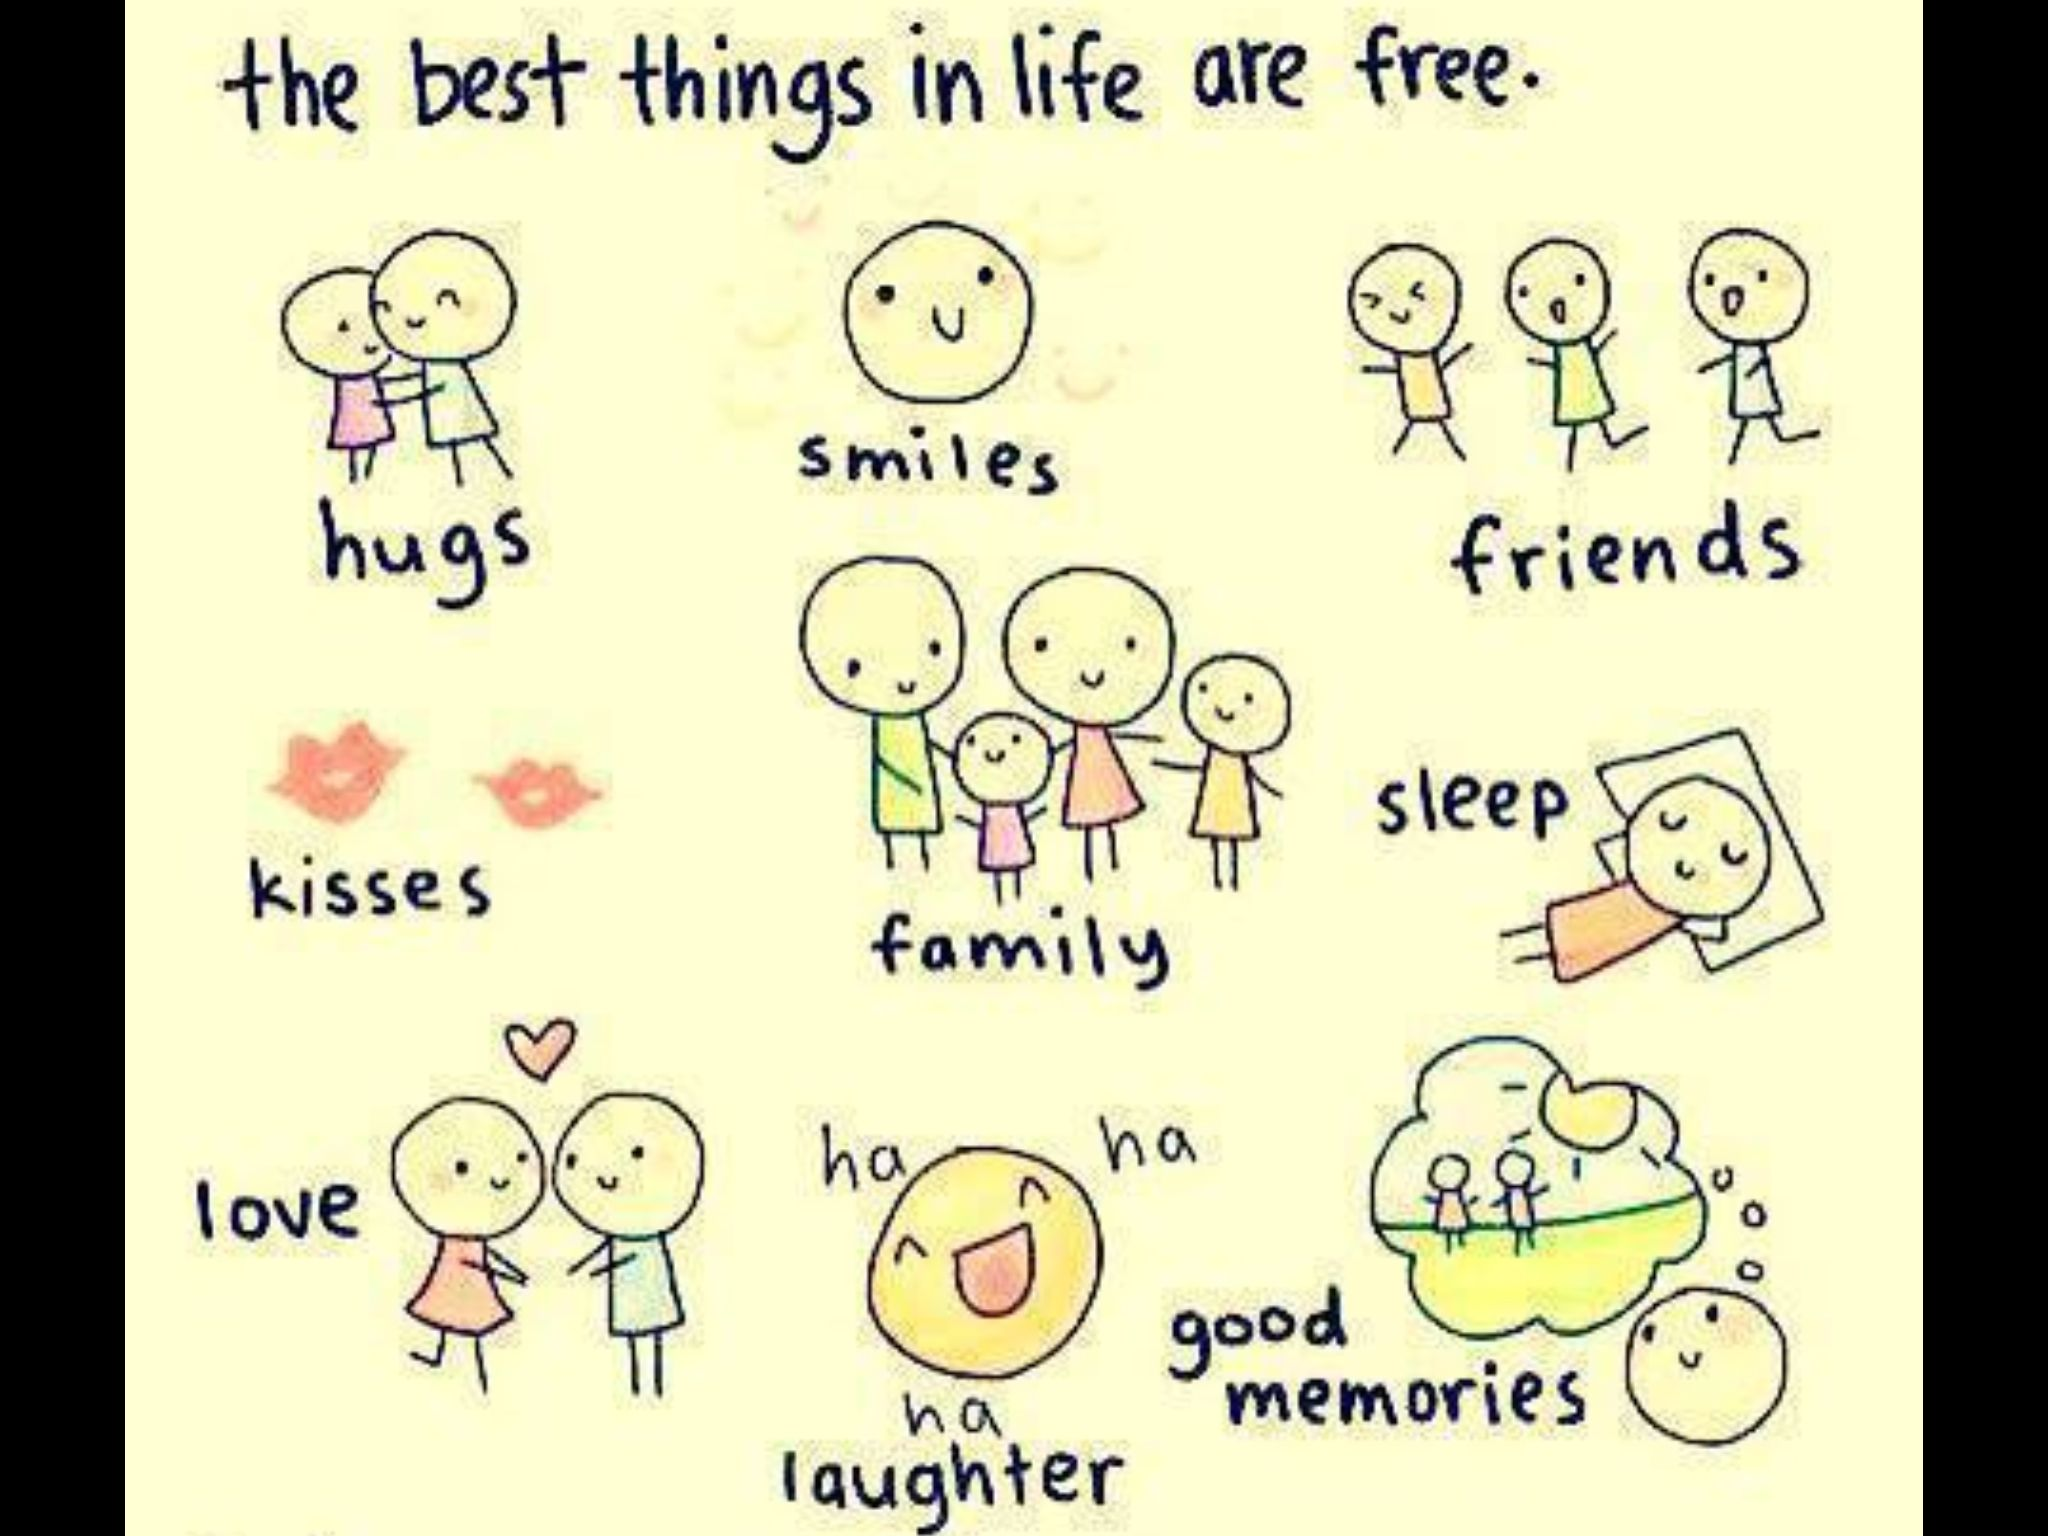 Best things are free!